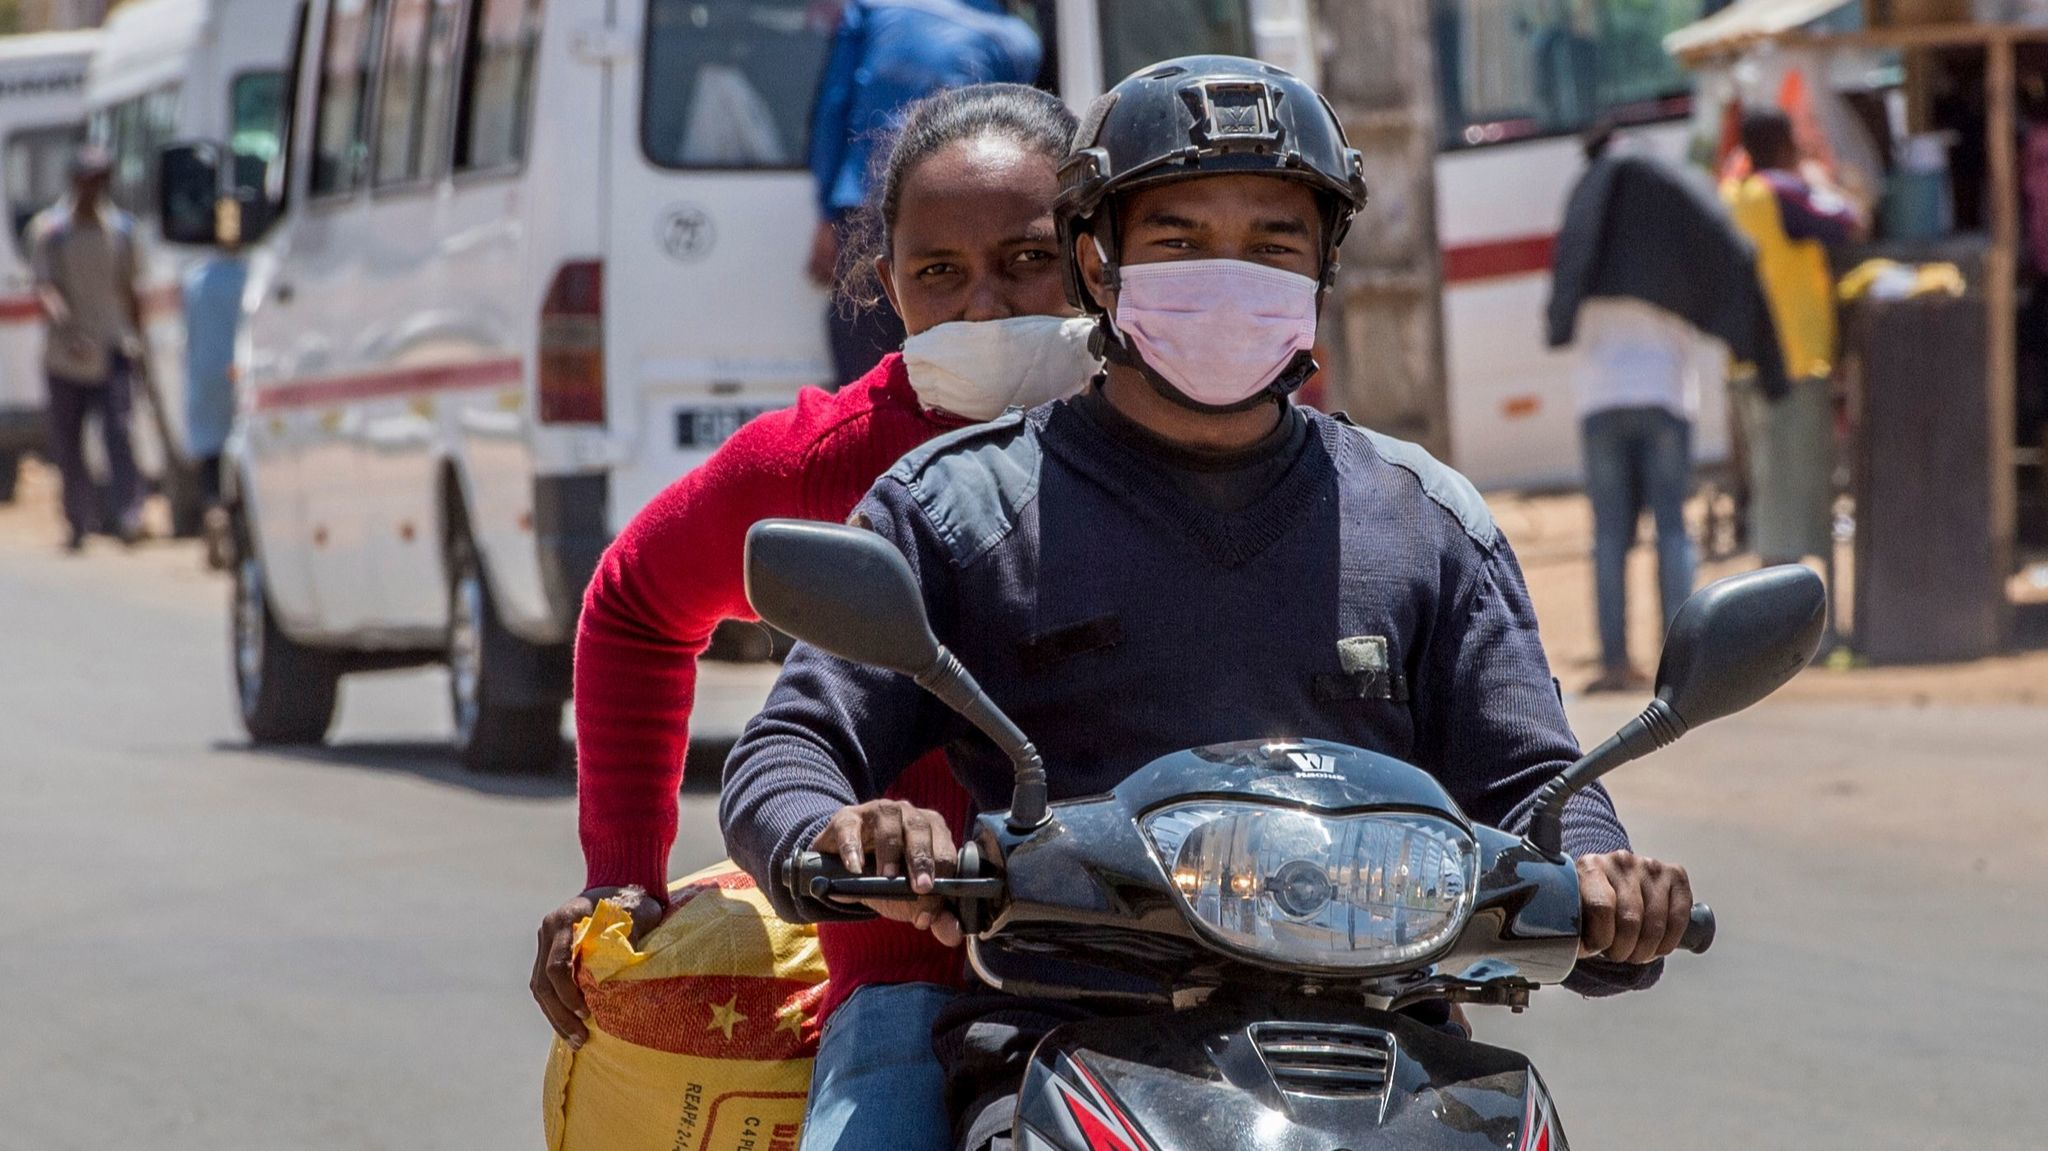 In Madagascar's capital, Antananarivo, people are buying masks to protect themselves against the plague outbreak.